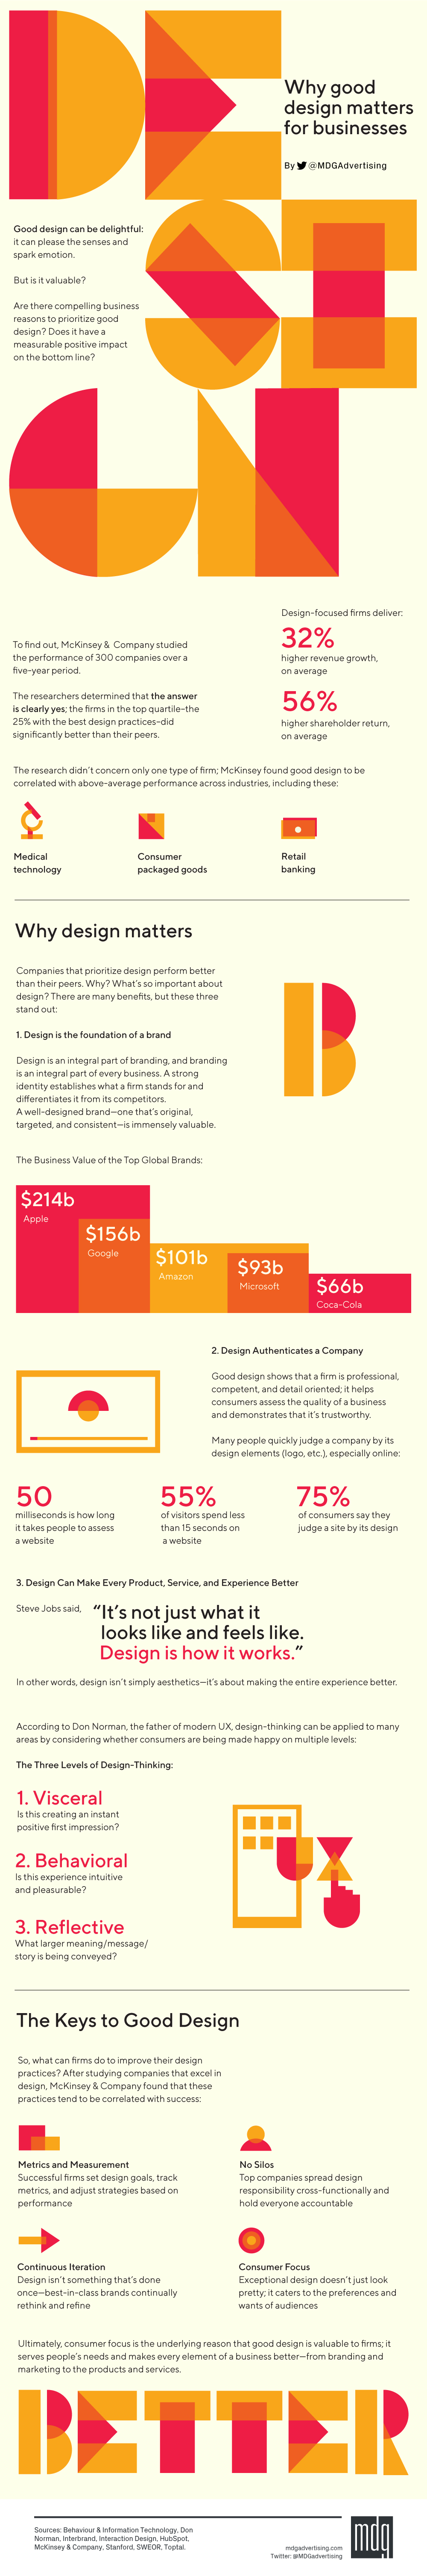 Why Good Design Matters for Businesses [Infographic]